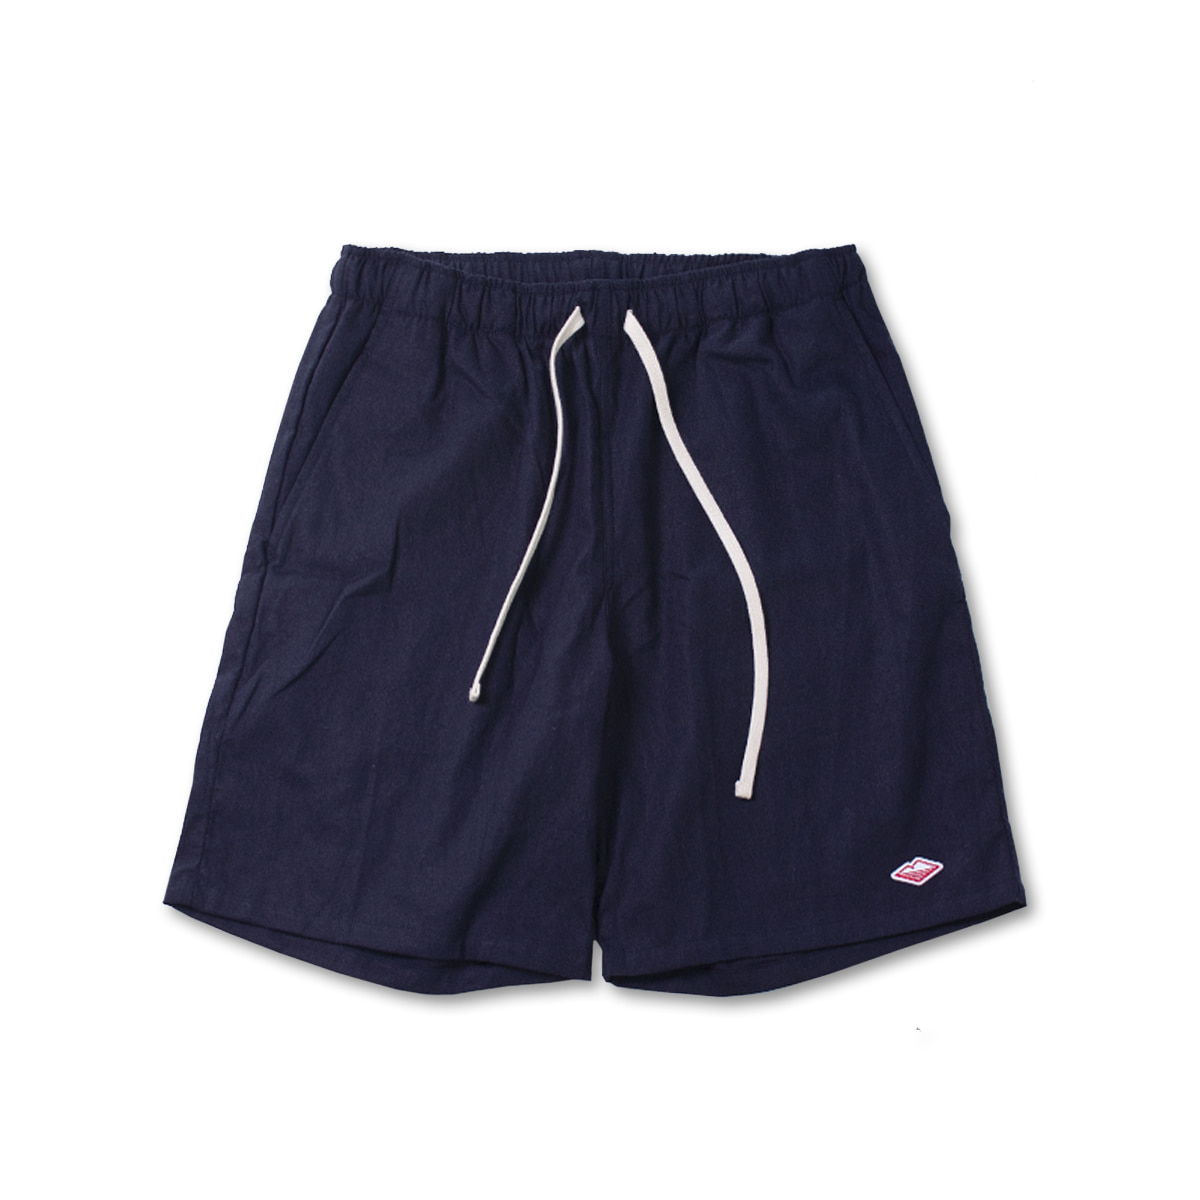 [BATTENWEAR] ACTIVE LAZY SHORTS 'NAVY'